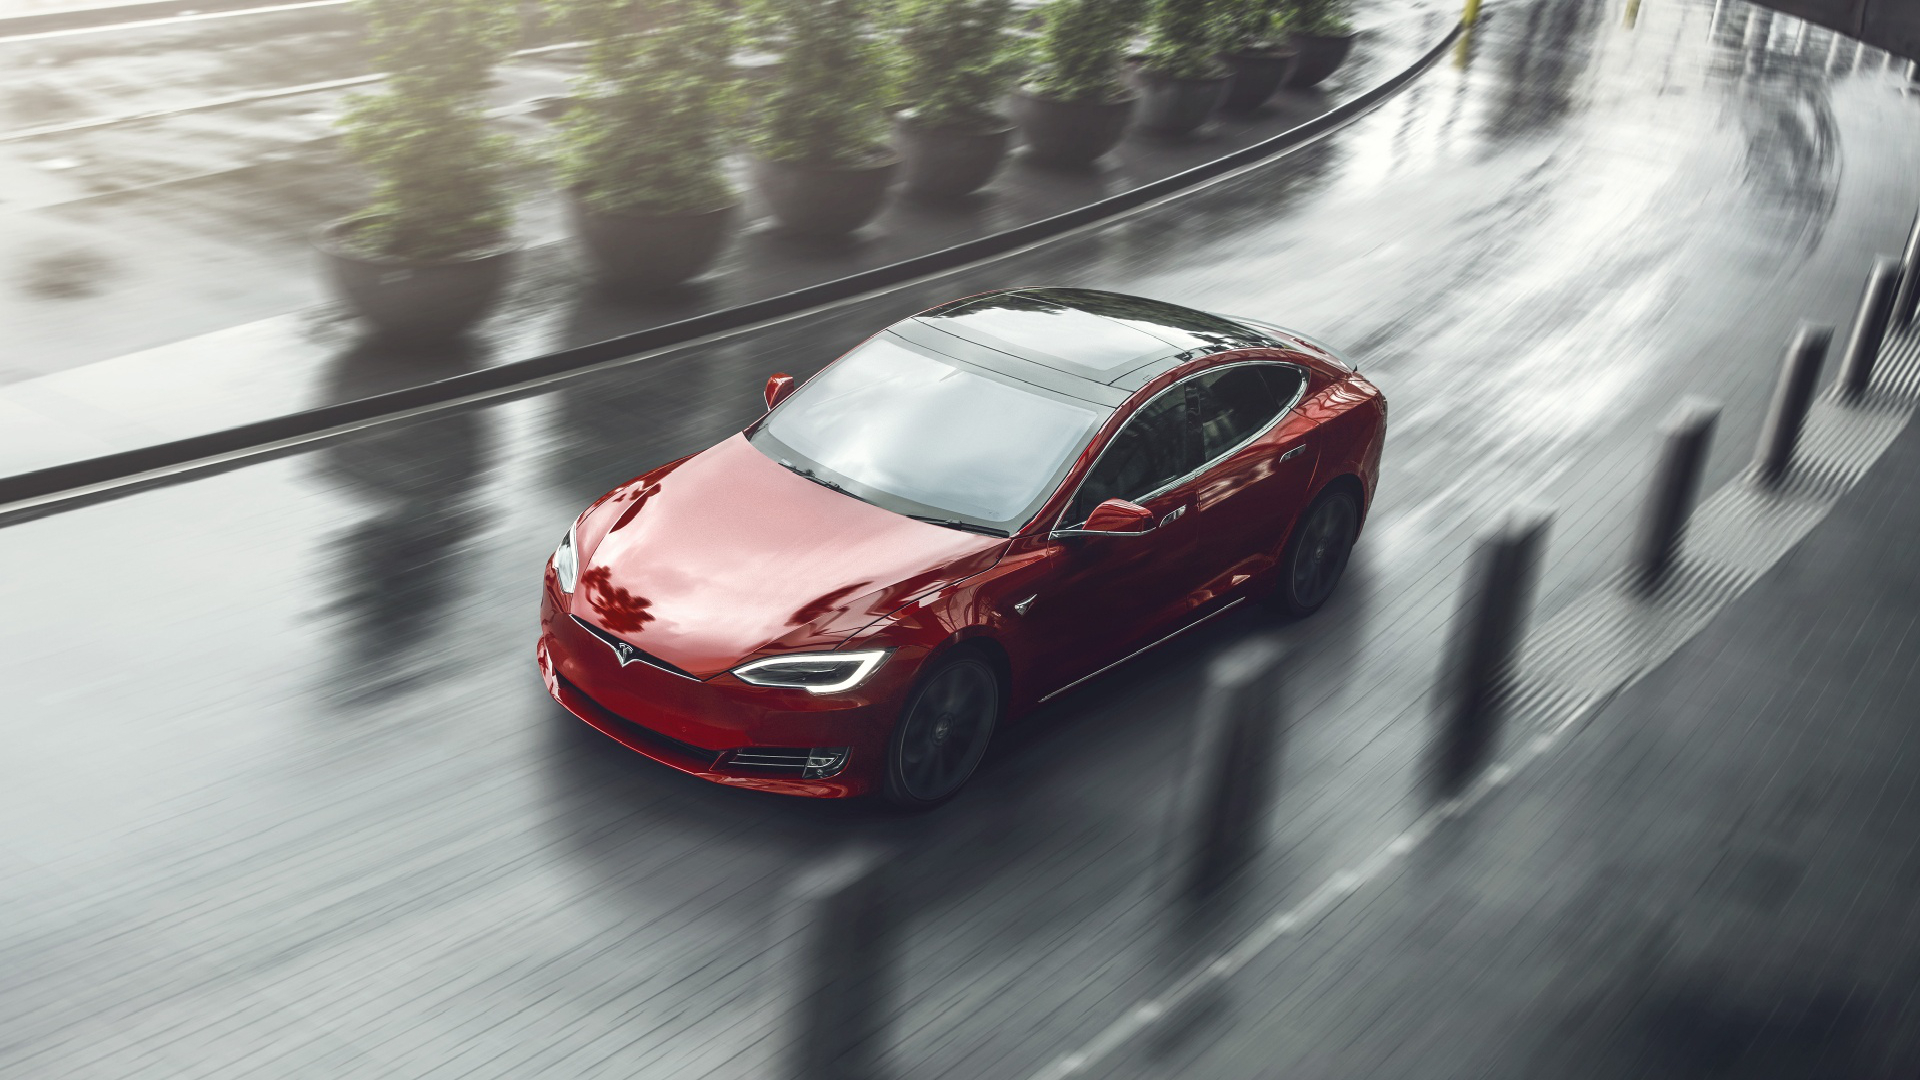 tesla,scarlet,car,,electric,electriccars,city,elevator car,driving,pattern,curve ball,greenenergy,cleanenergy,ecoenergy,cars,red,railway car,railcar,models,auto,vehicle,sustainableenergy,renewableenergy,arch,curve,theoretical account,s,electriccar,model,travel,road